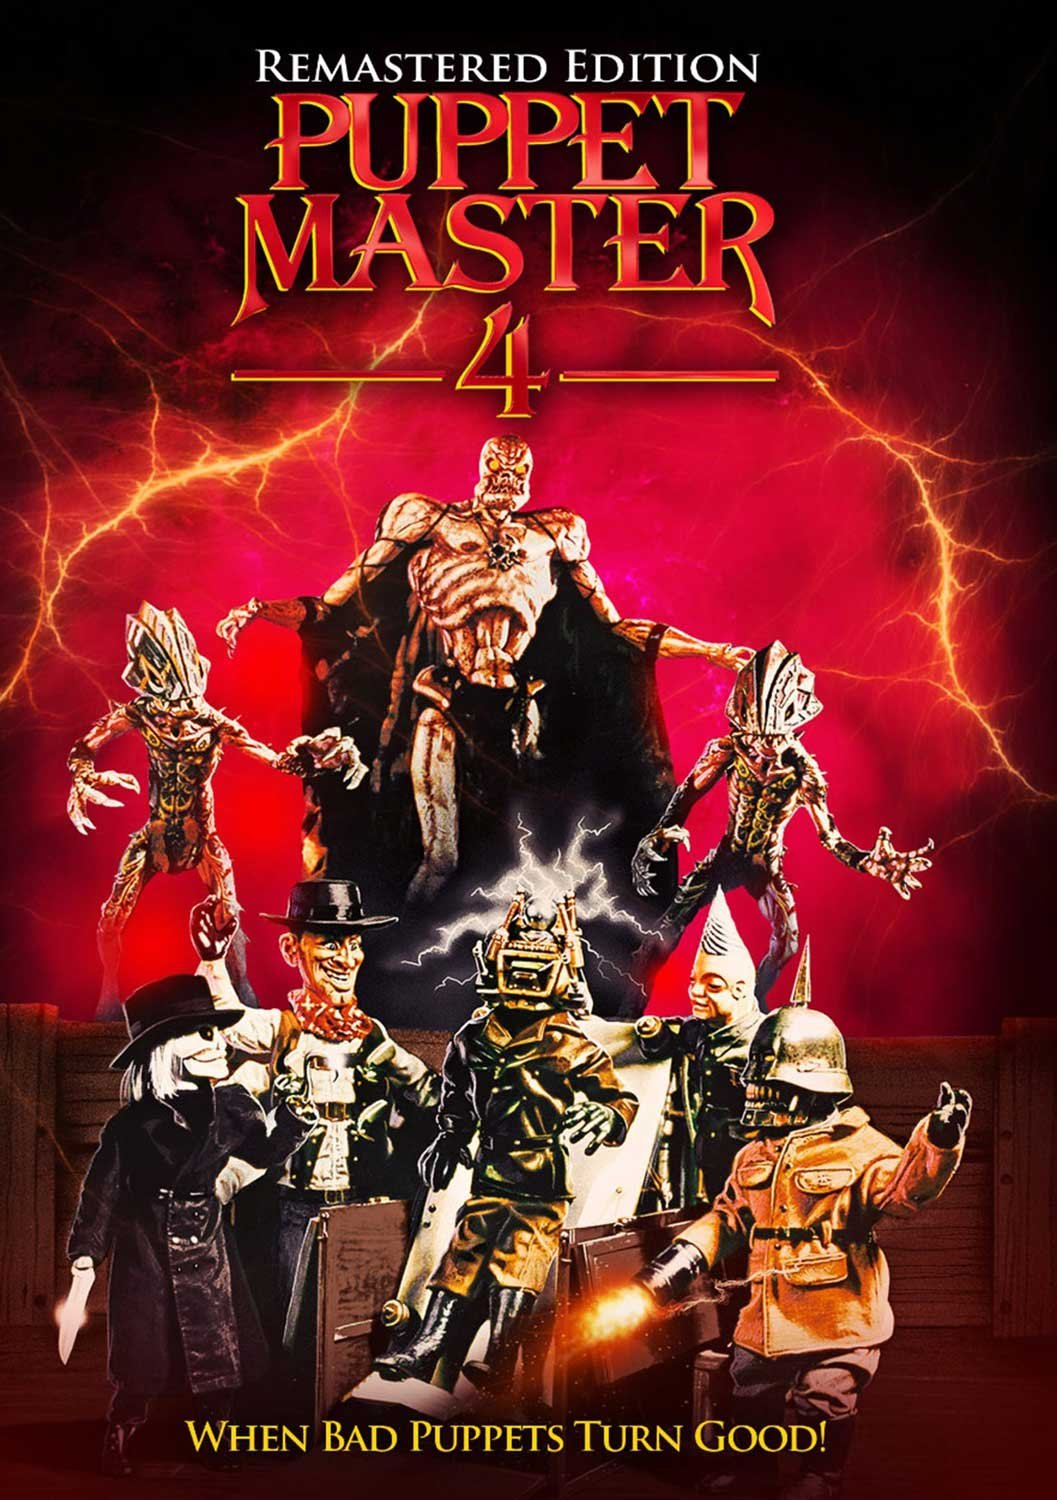 Puppet Master 4 Re-mastered